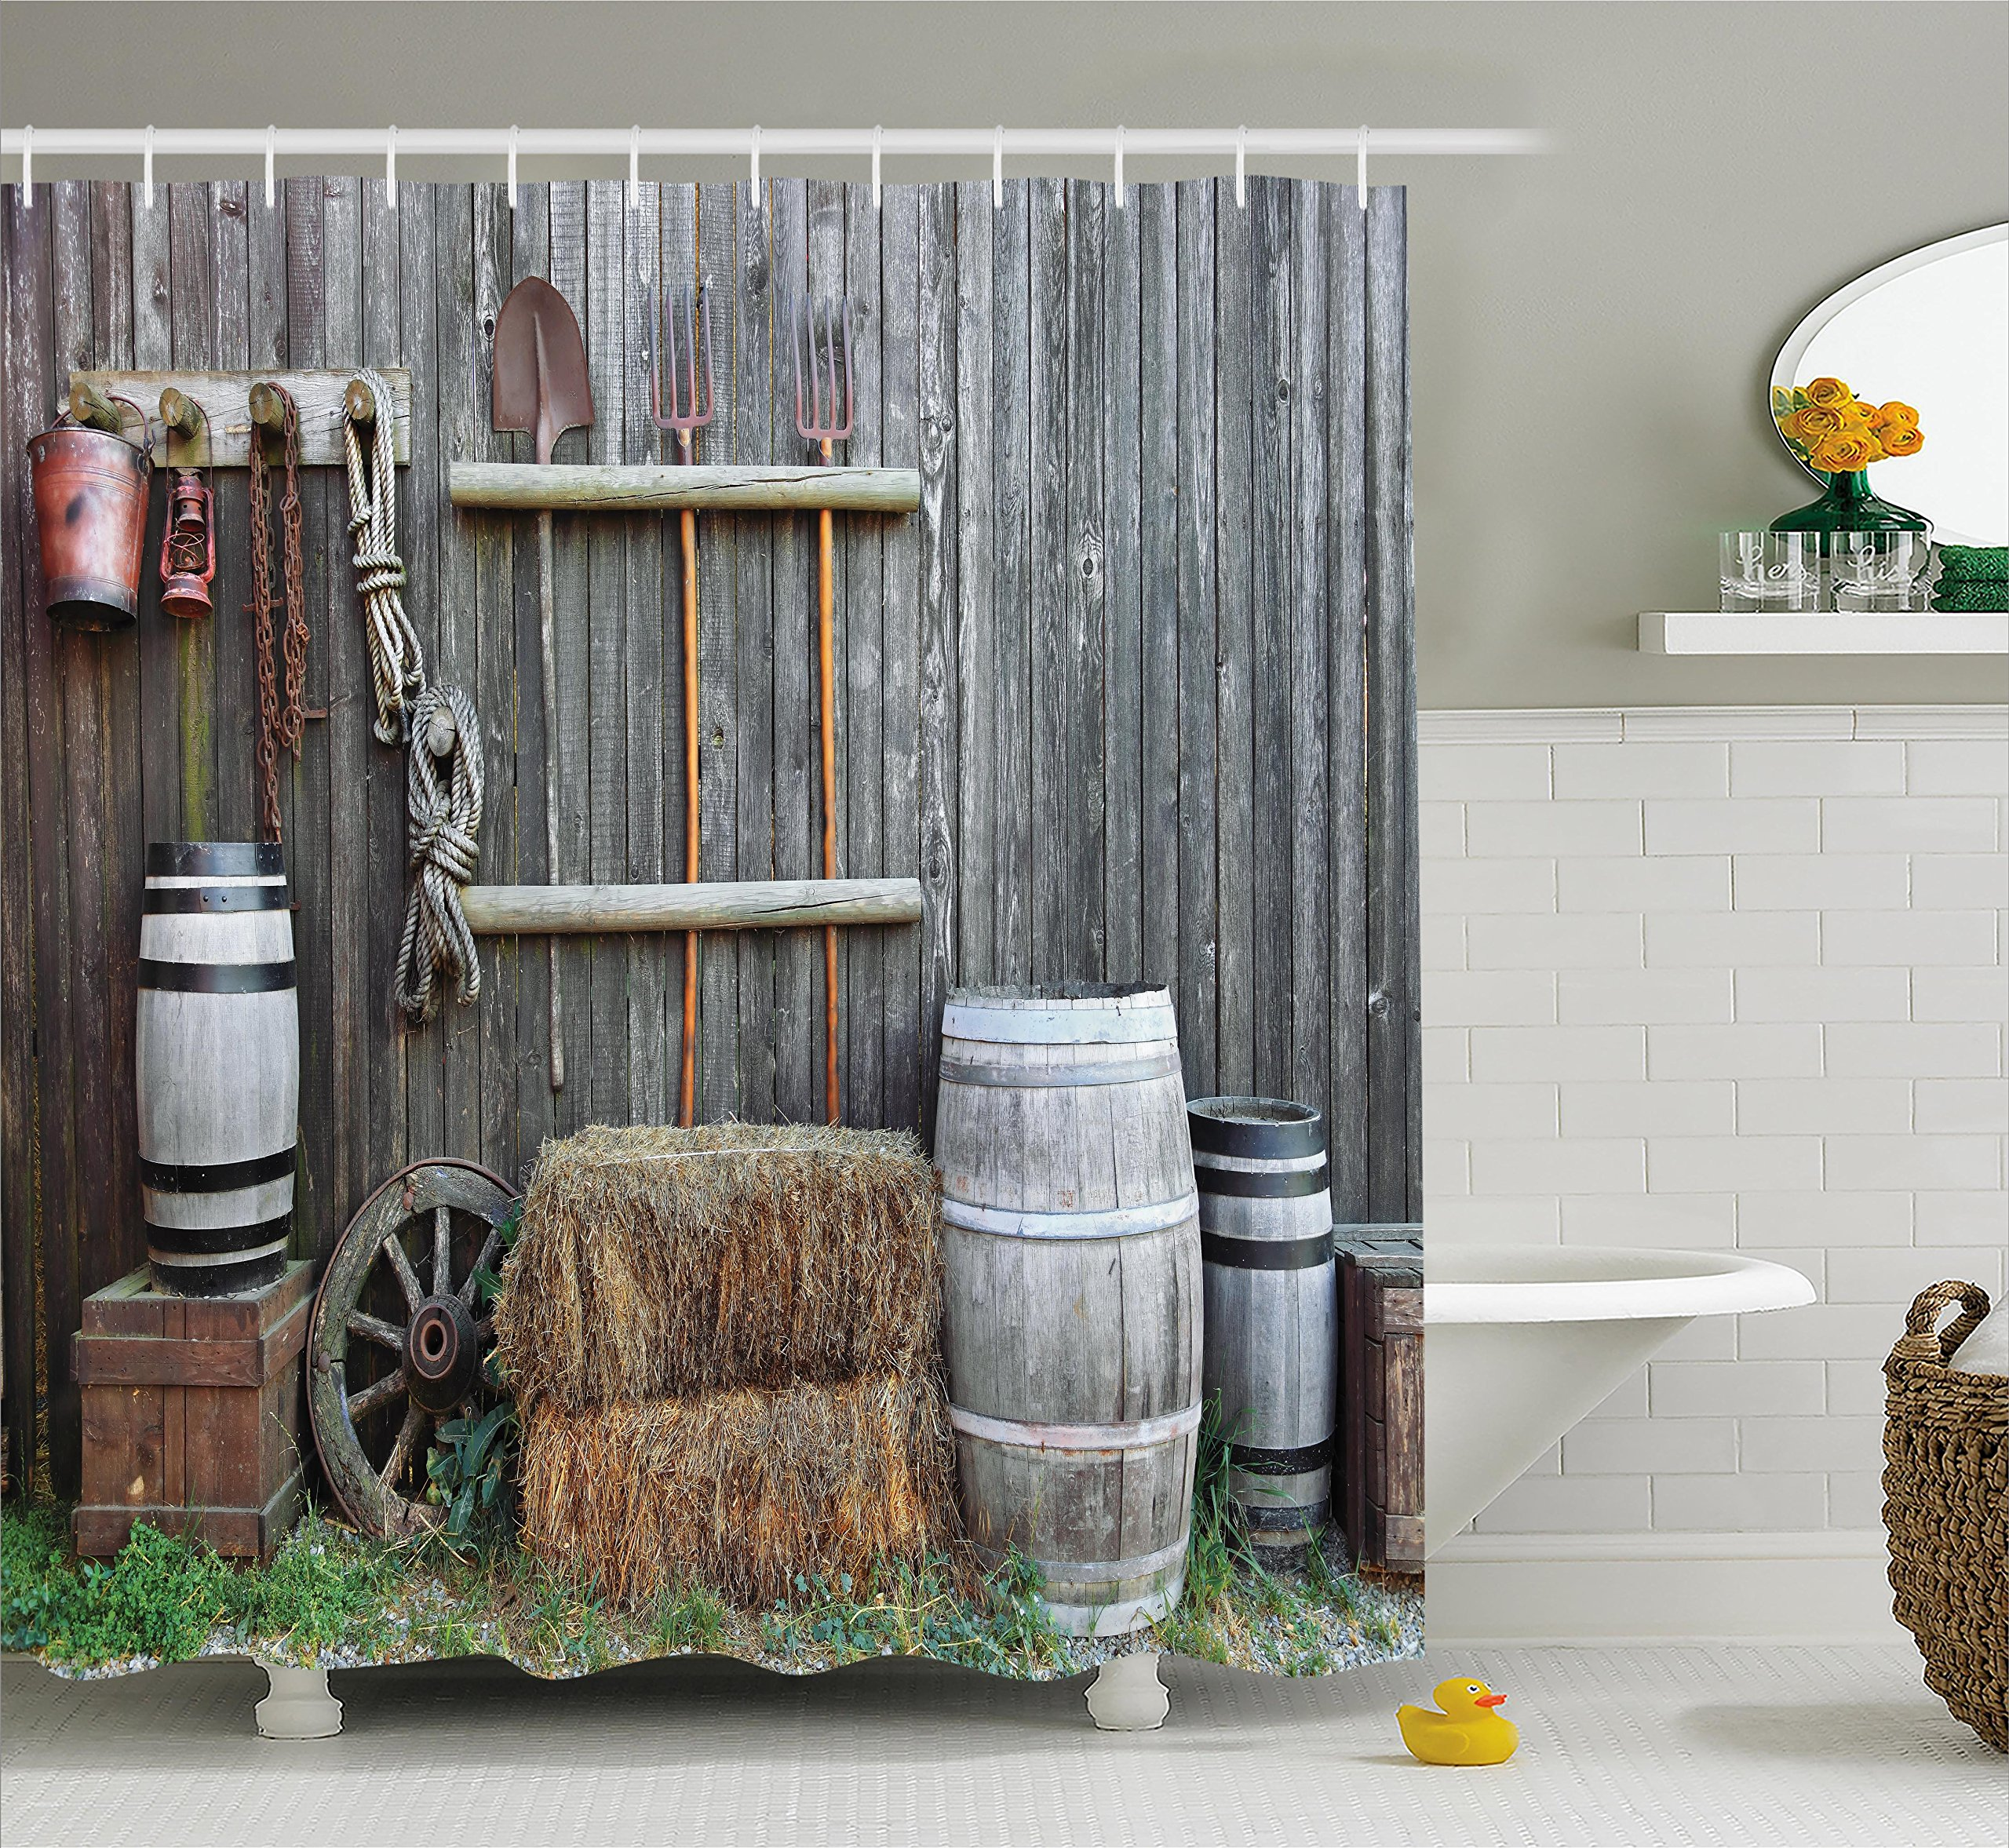 Agriculture Shower Curtain by Ambesonne, Western Wooden Barn Countryside Bucolic Rural House Folk Vintage Scenery, Fabric Bathroom Decor Set with Hooks, 75 Inches Long, Grey Light Brown